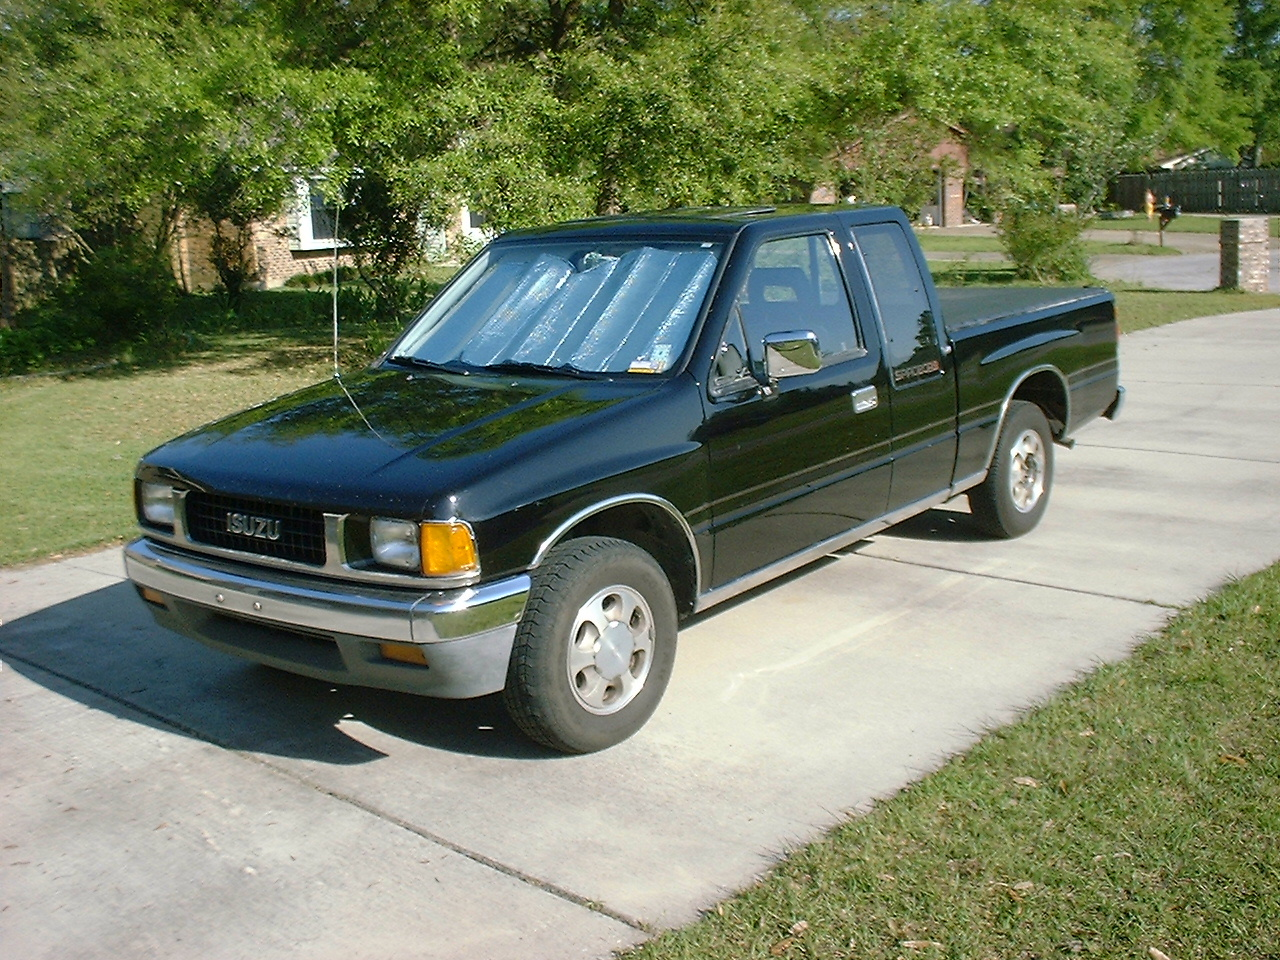 Chevrolet luv 1988 photo - 5